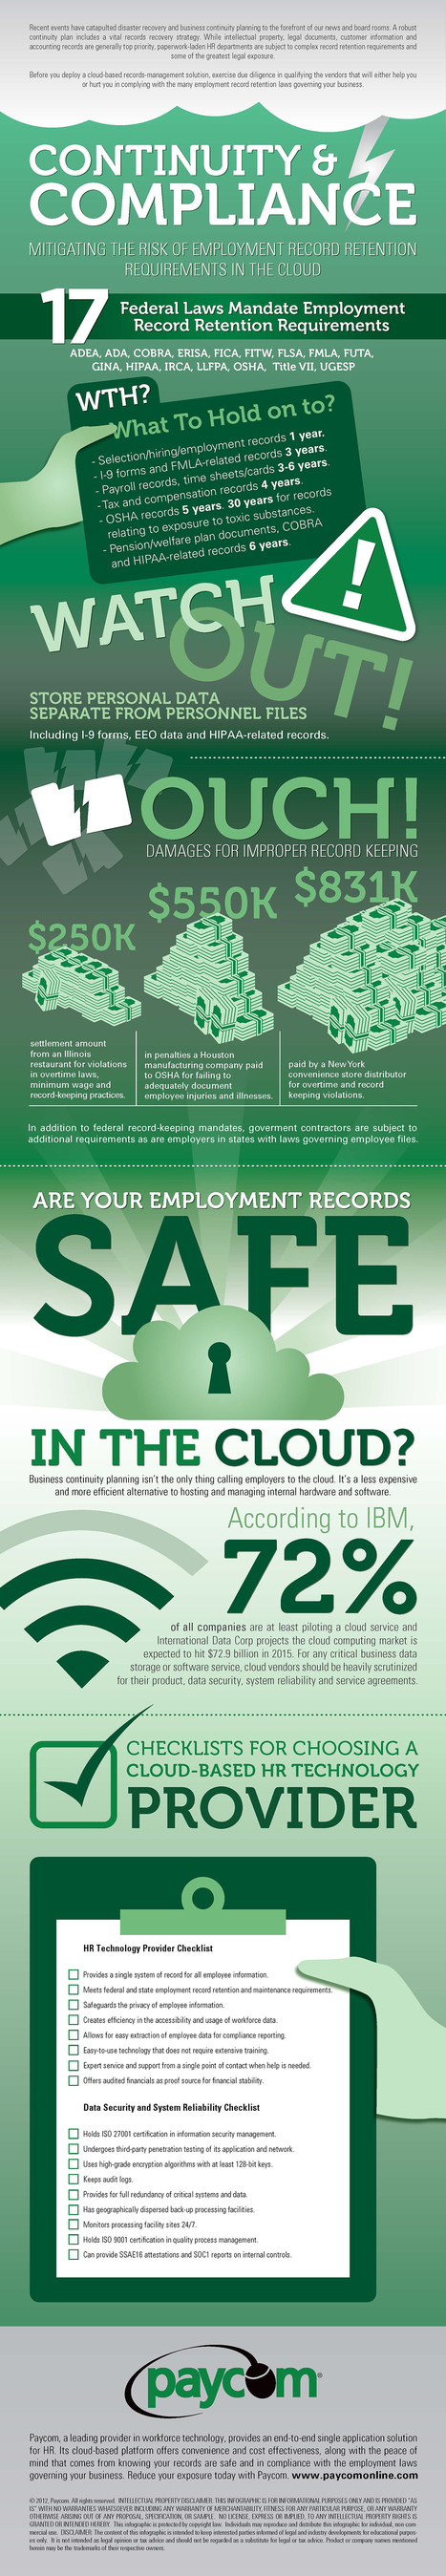 INFOGRAPHIC: Cloud Computing Compliance | digitalassetman | Scoop.it